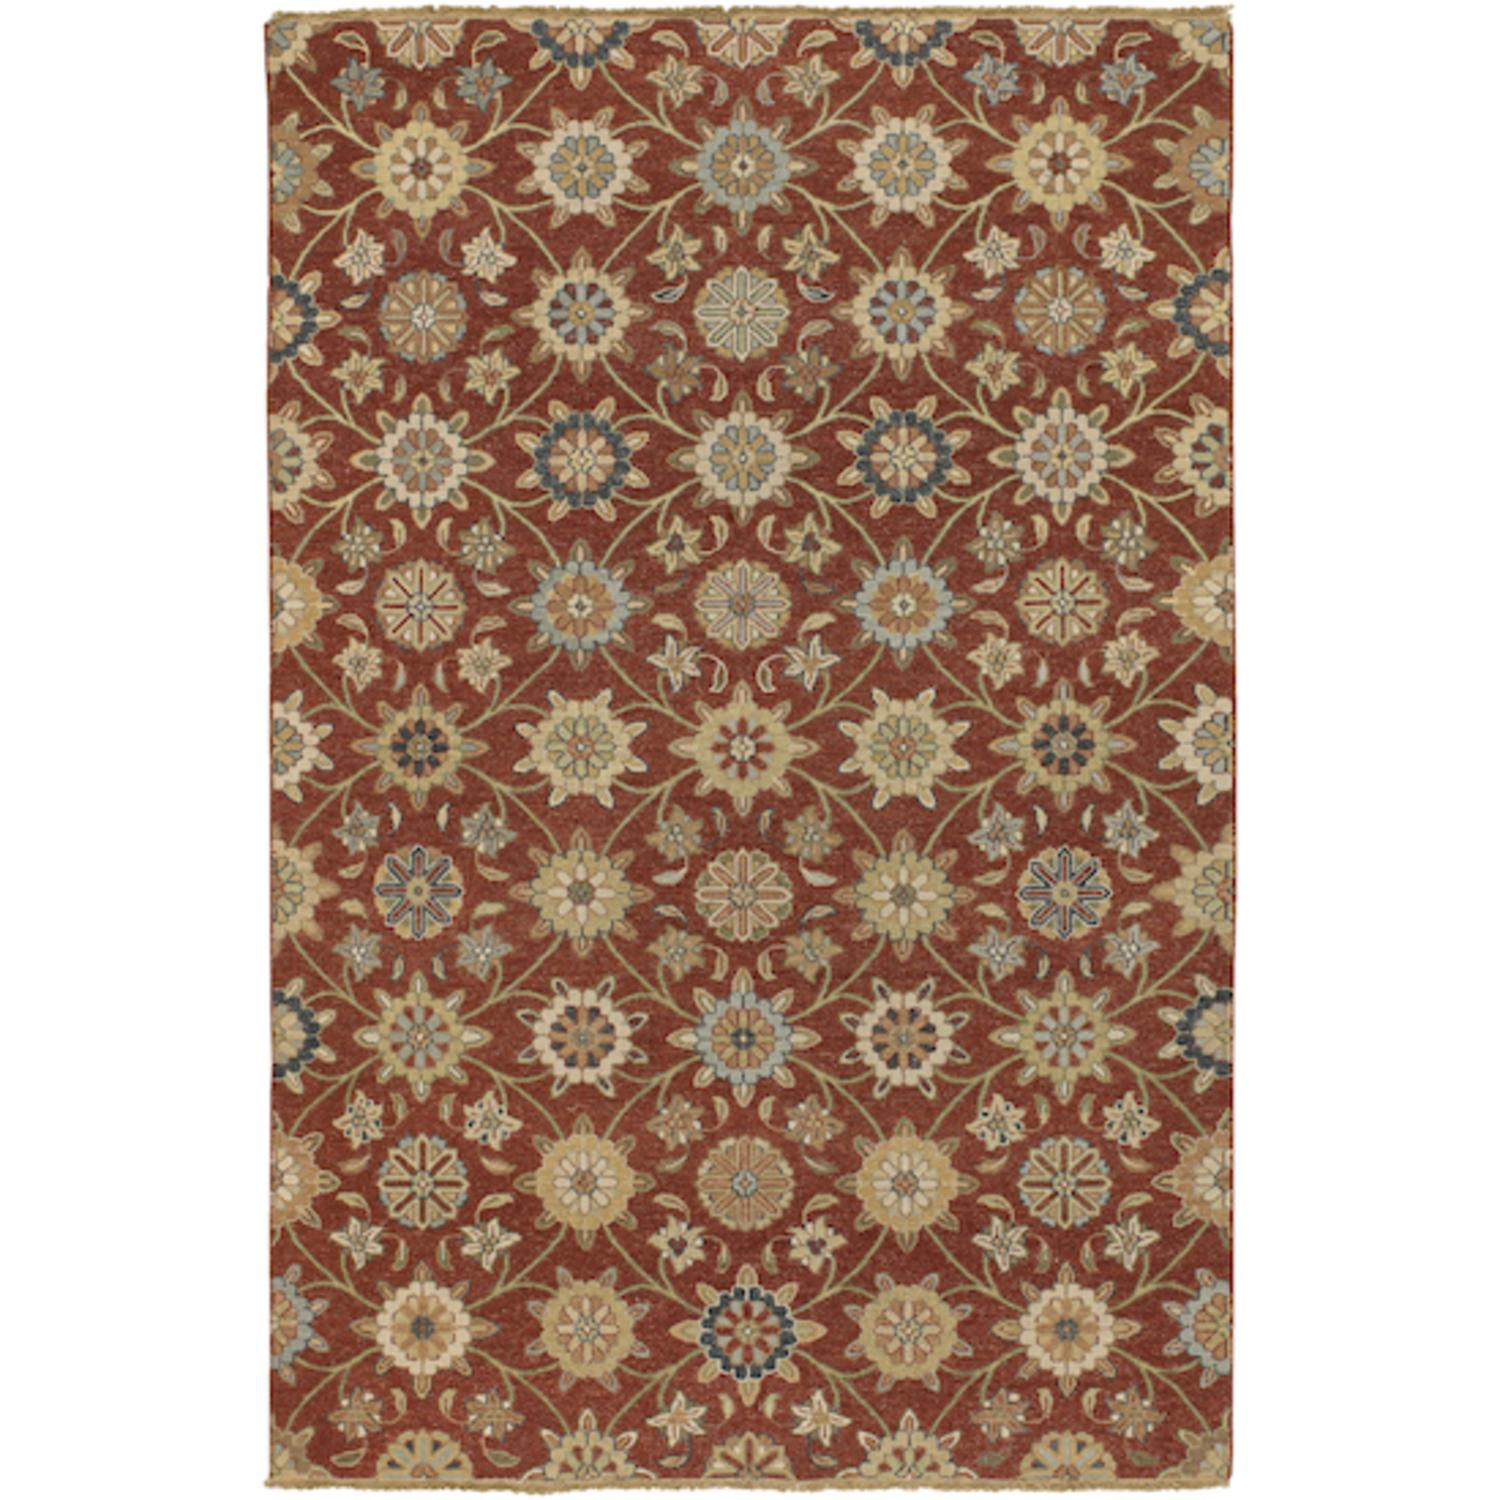 6' x 9' Sumerian Breeze Brick Red and Taupe Wool Area Throw Rug